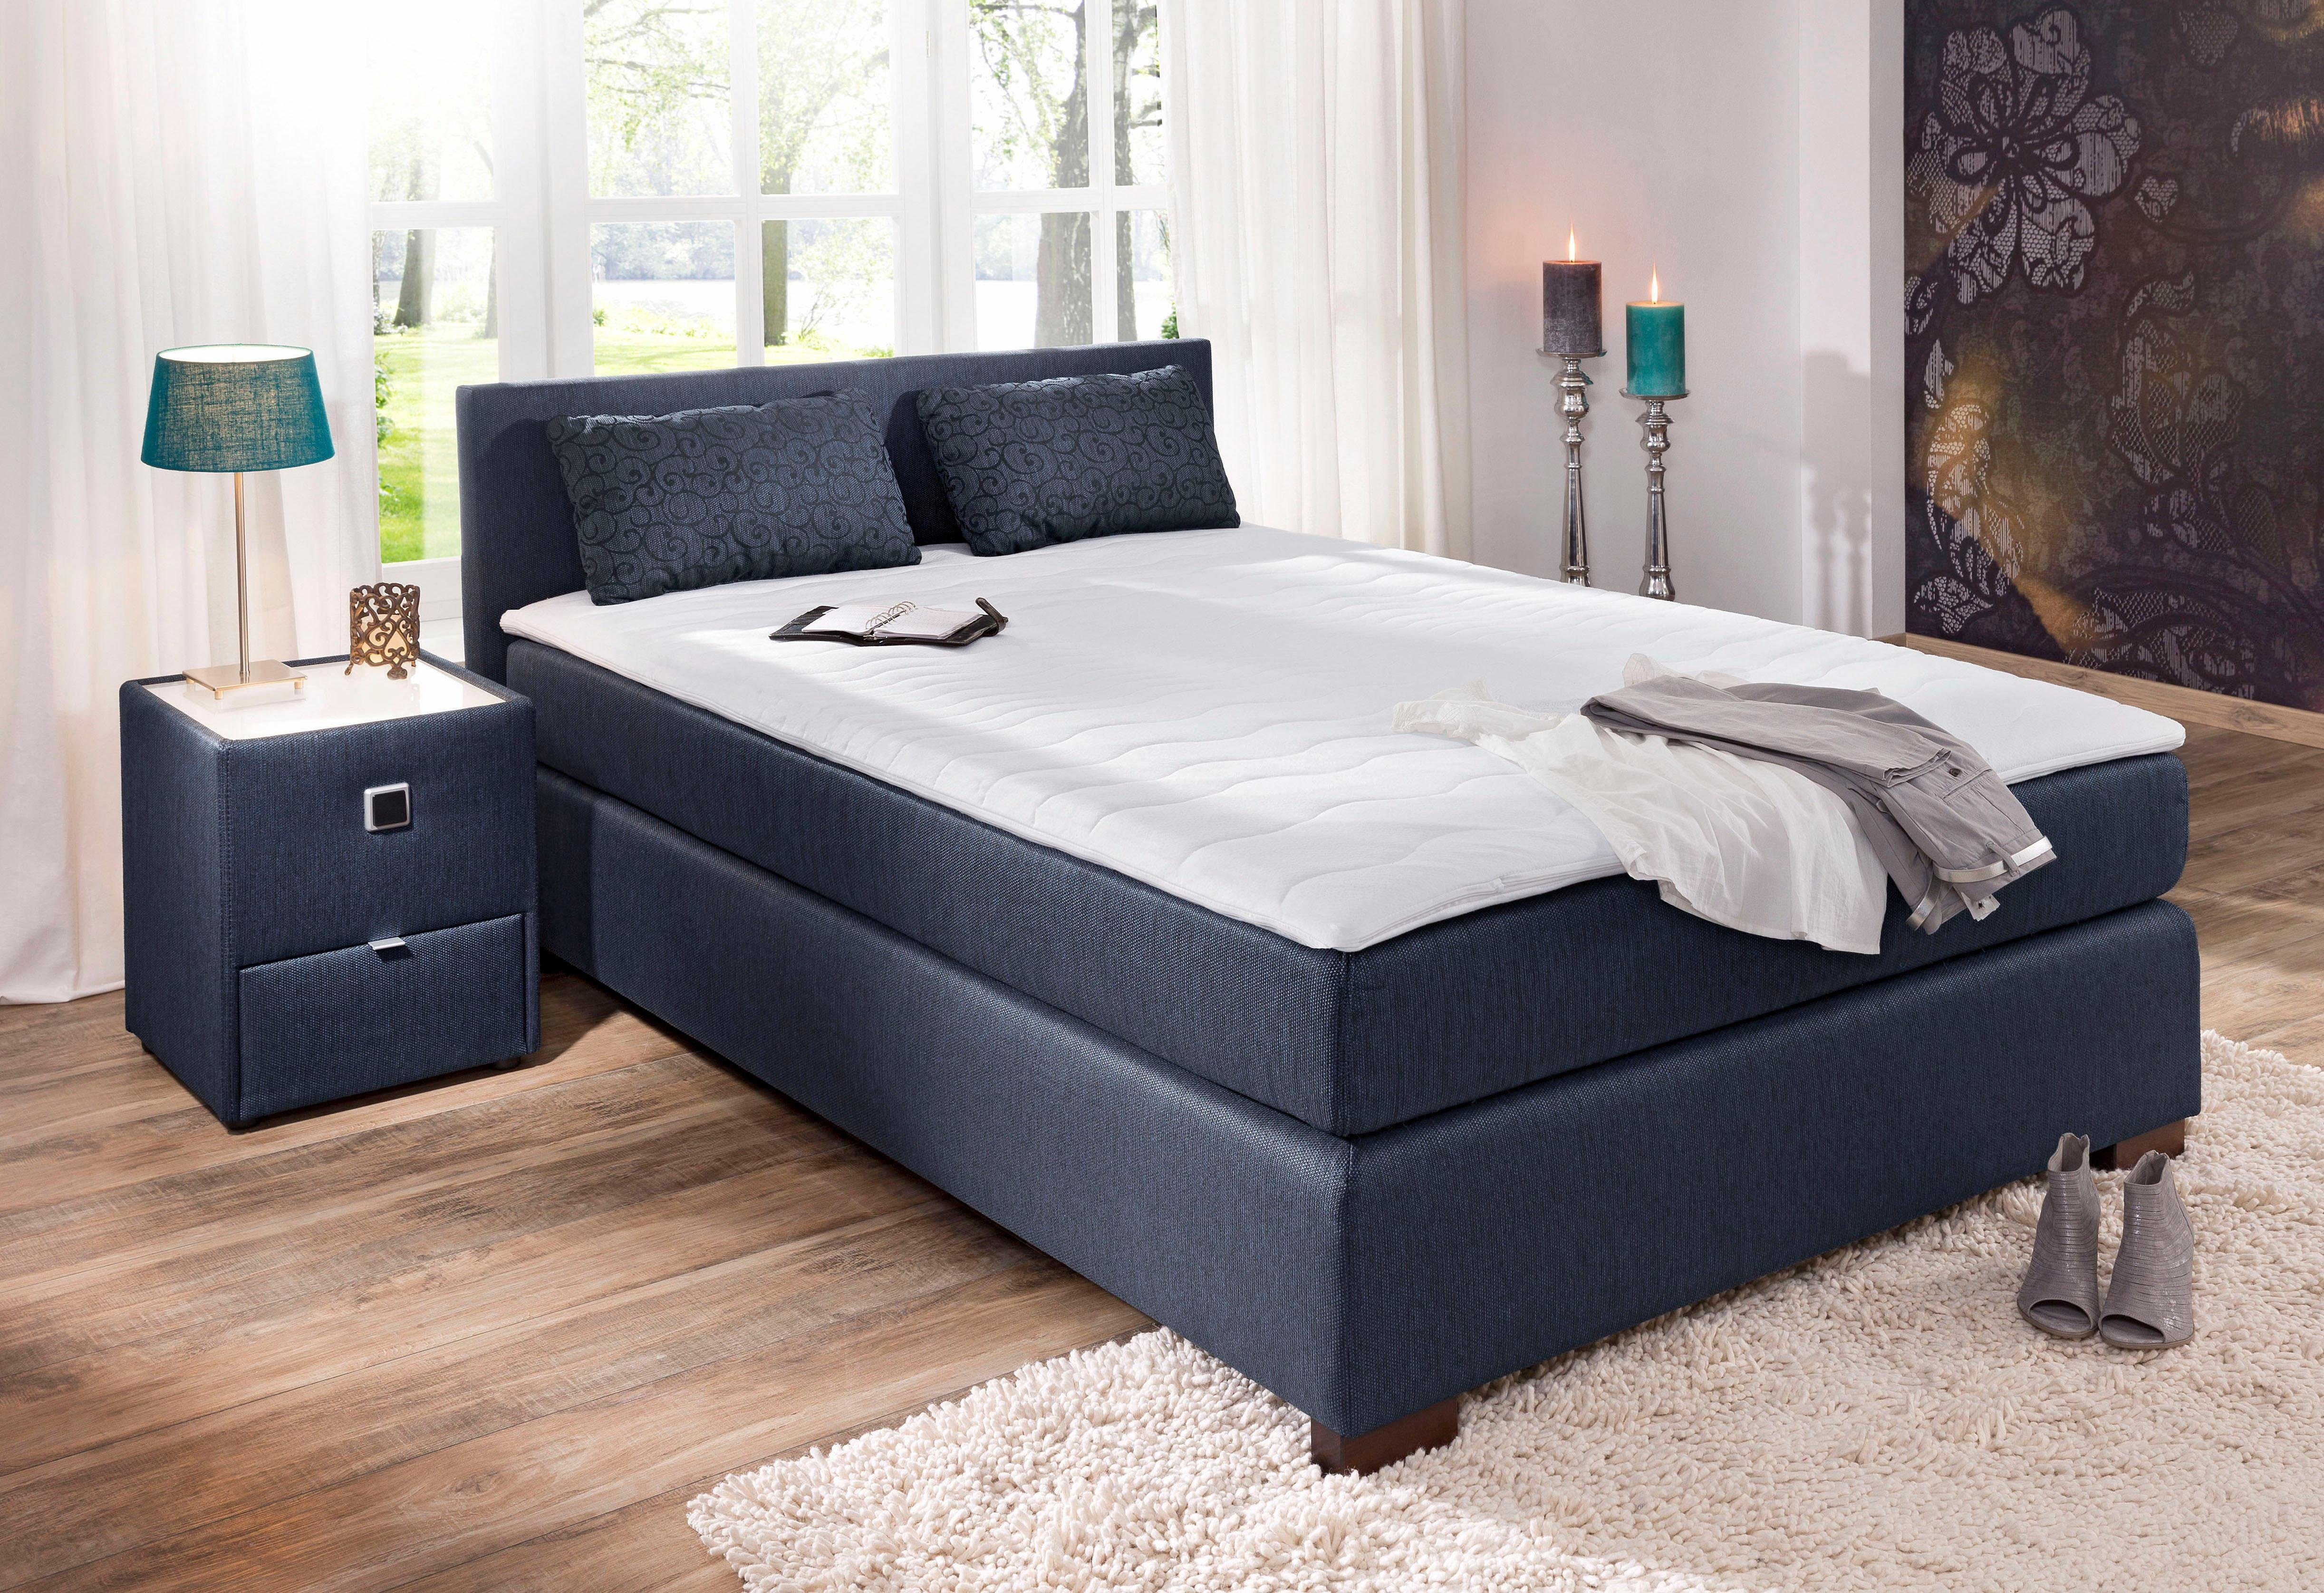 42 sparen boxspringbett jenny ab 349 99 cherry m bel otto. Black Bedroom Furniture Sets. Home Design Ideas